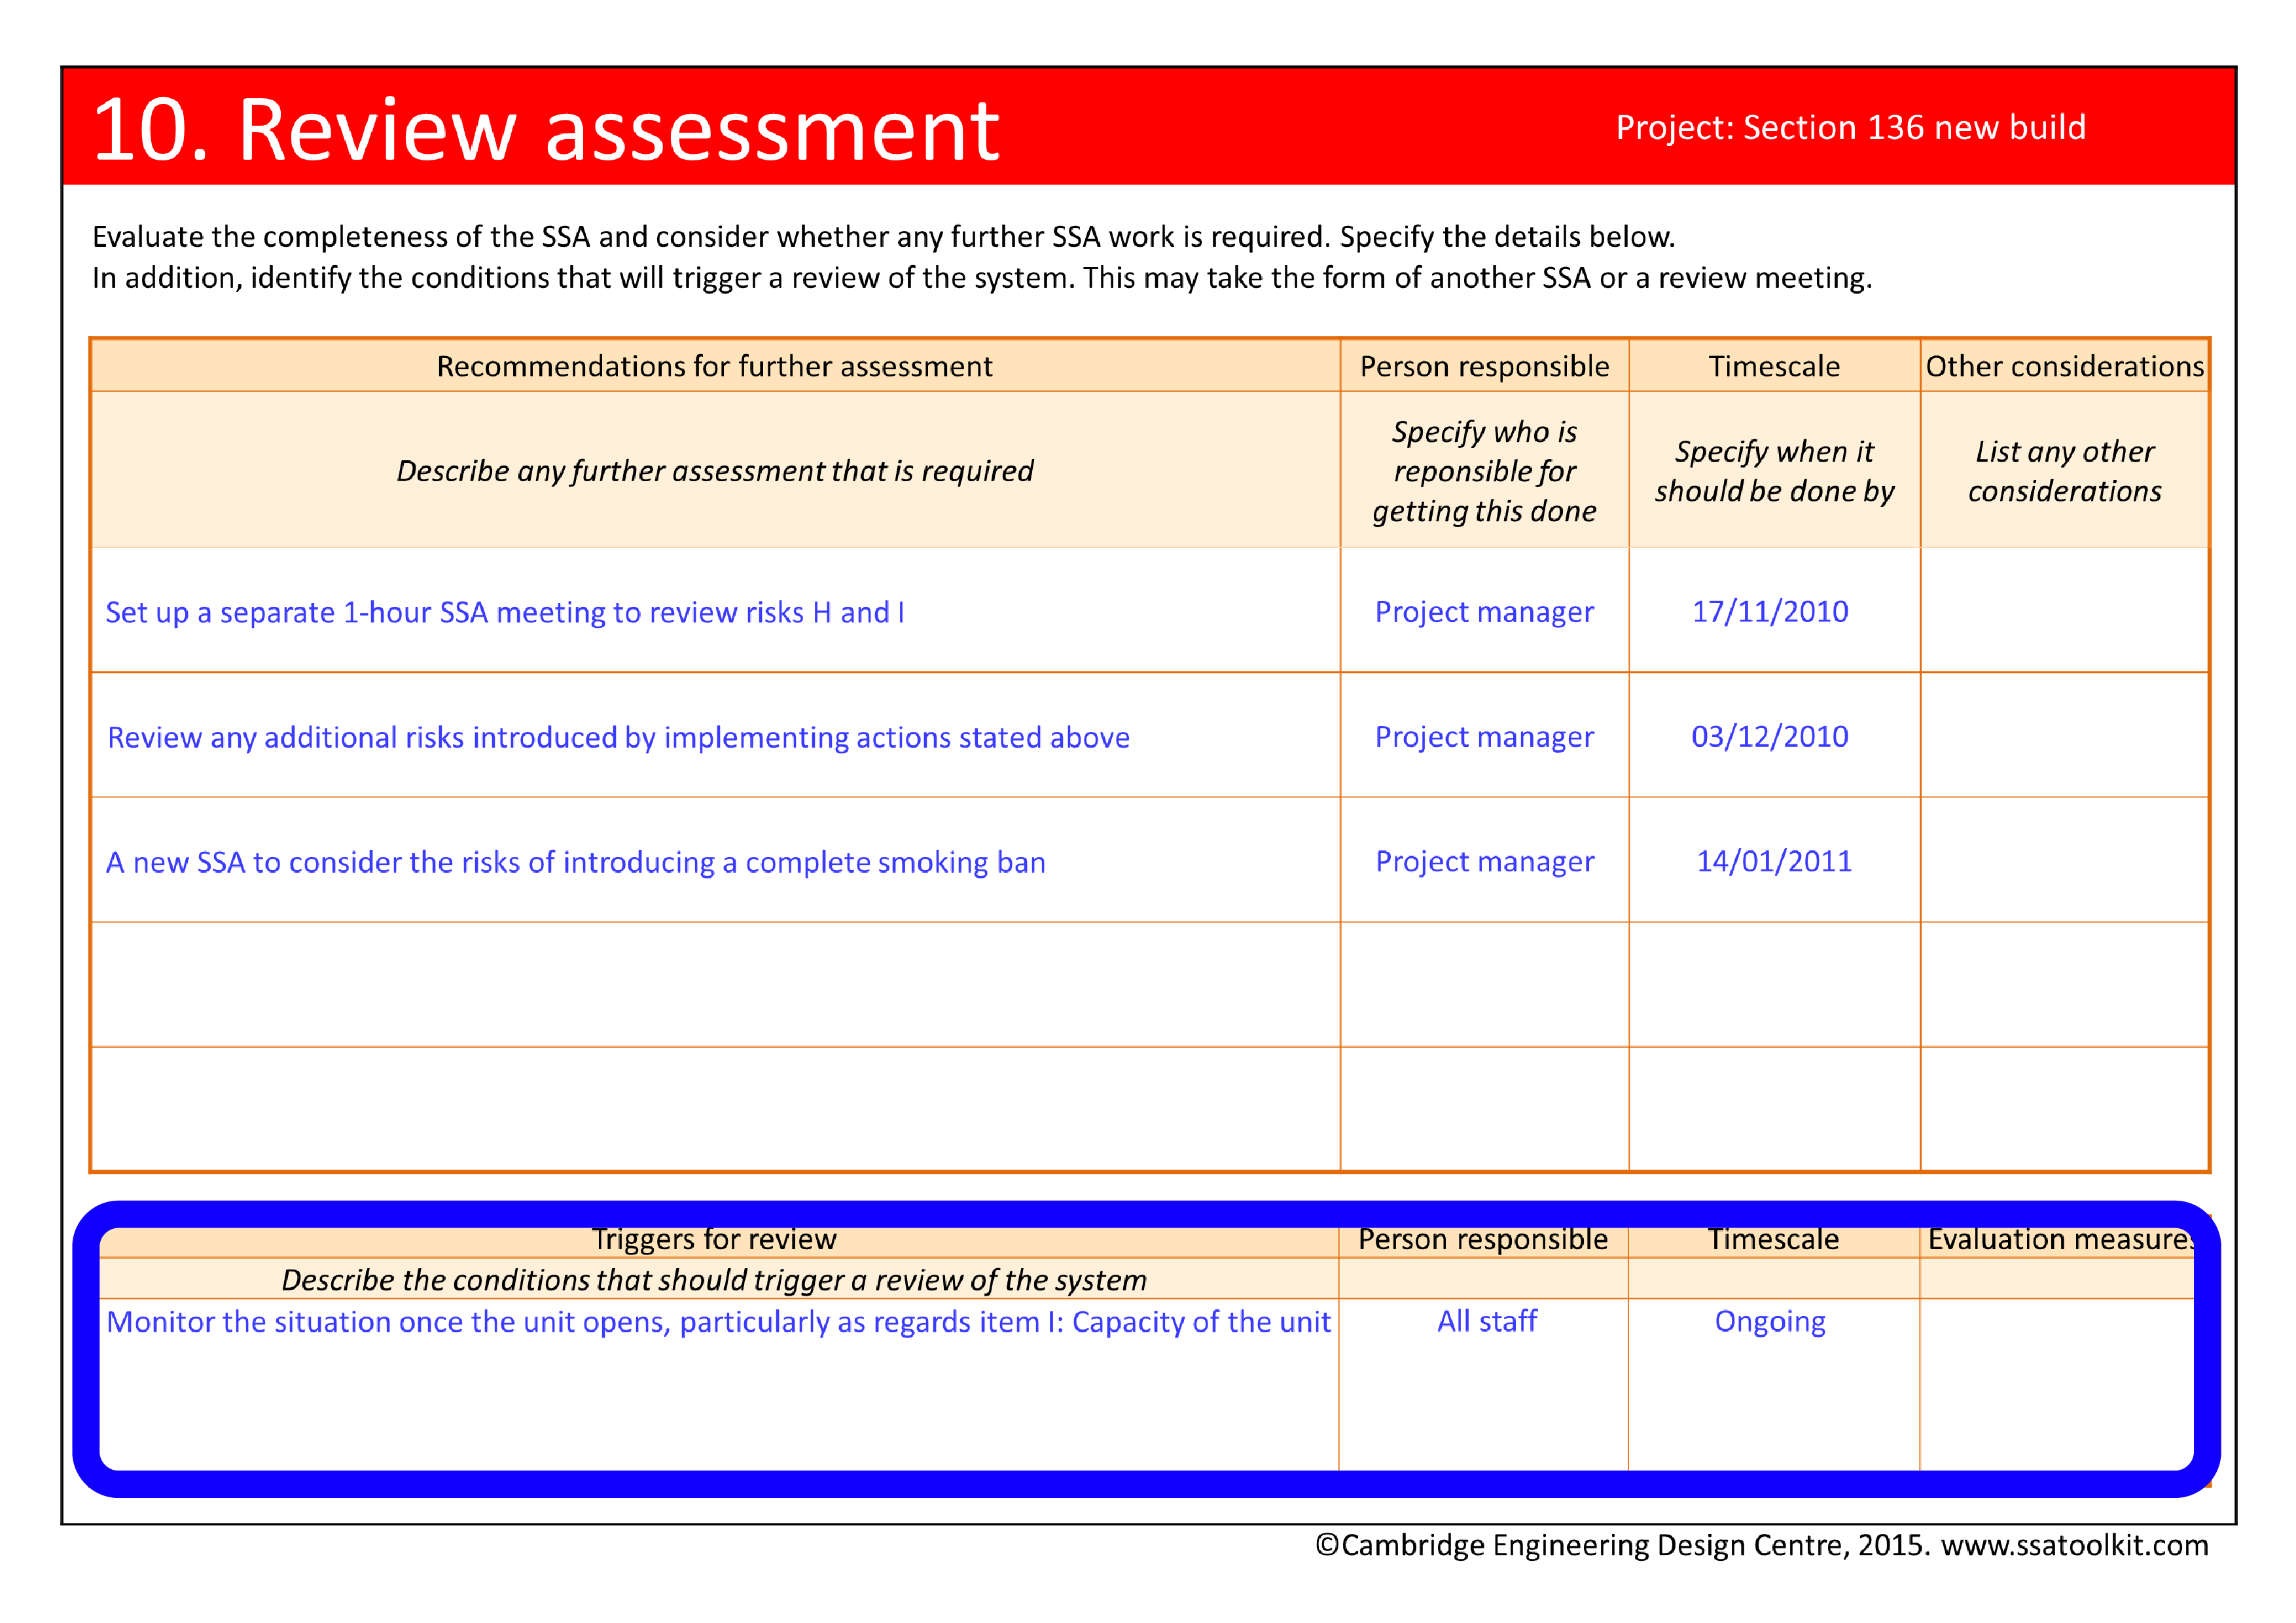 Screenshot of the Review assessment page from the Section 136 case study. The full form in pdf is available from the Resources page.